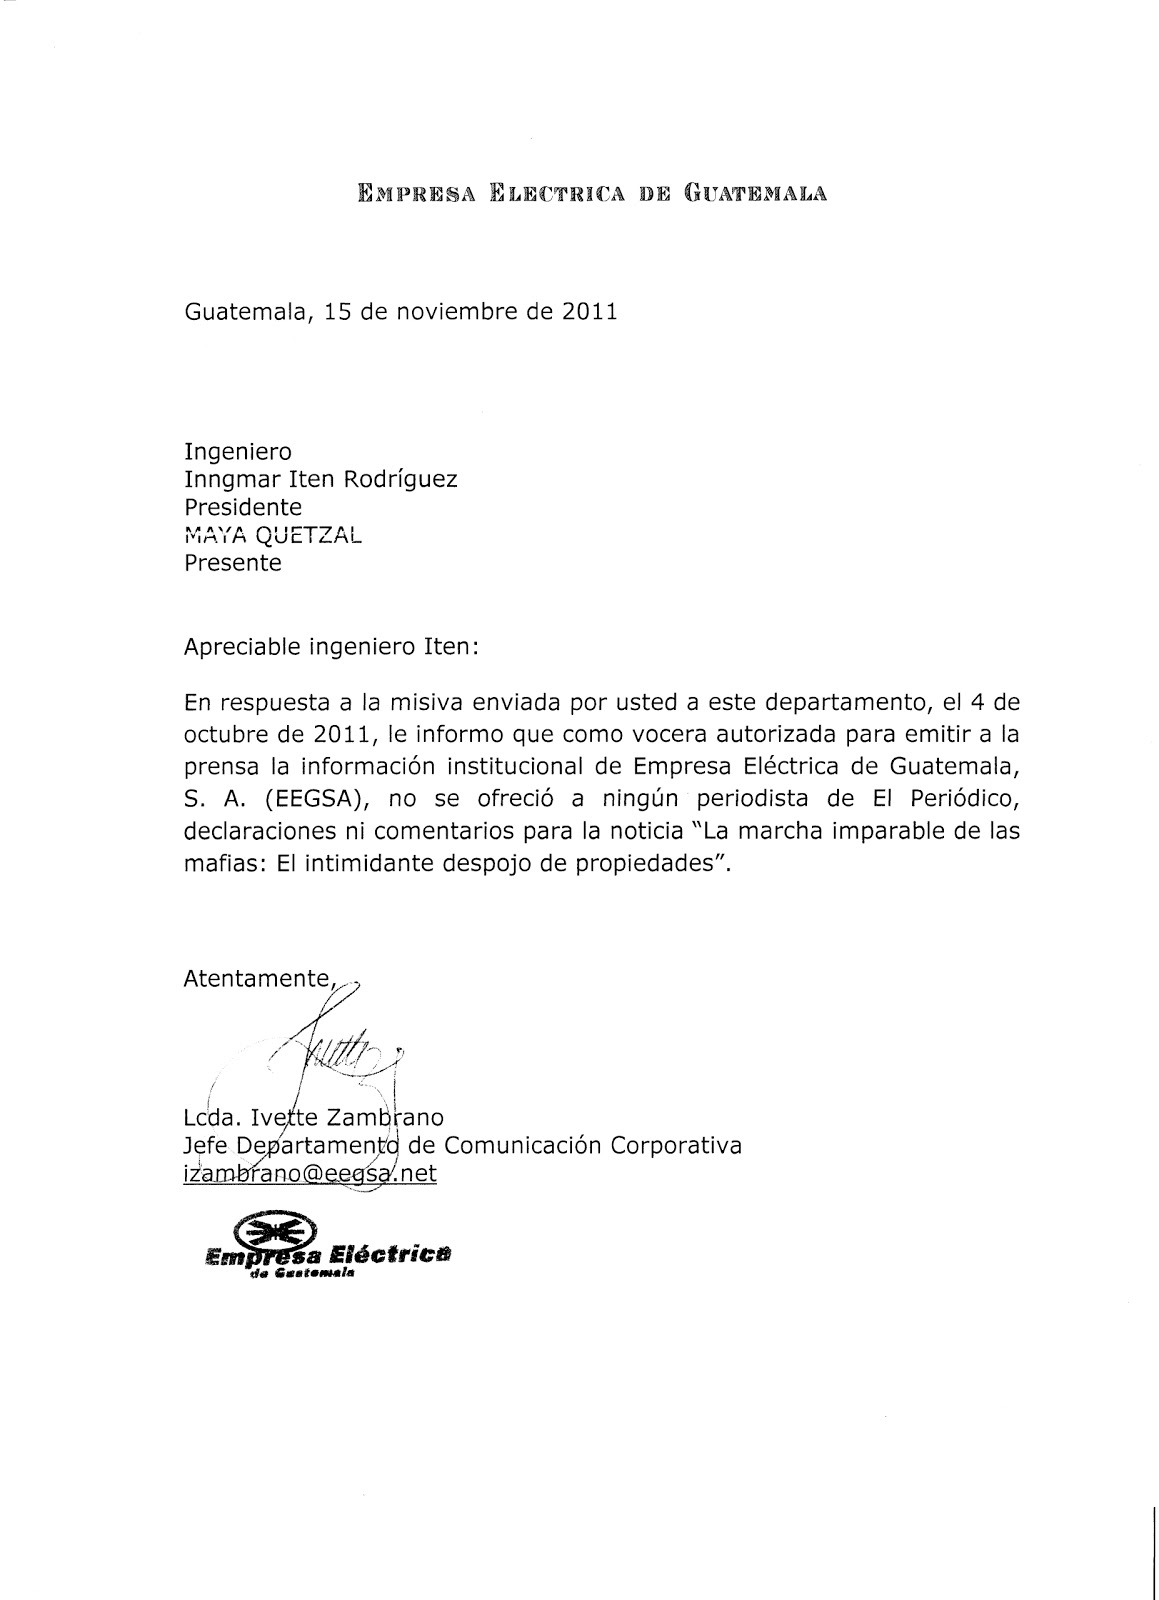 Download image carta de referencia personal pc android iphone and